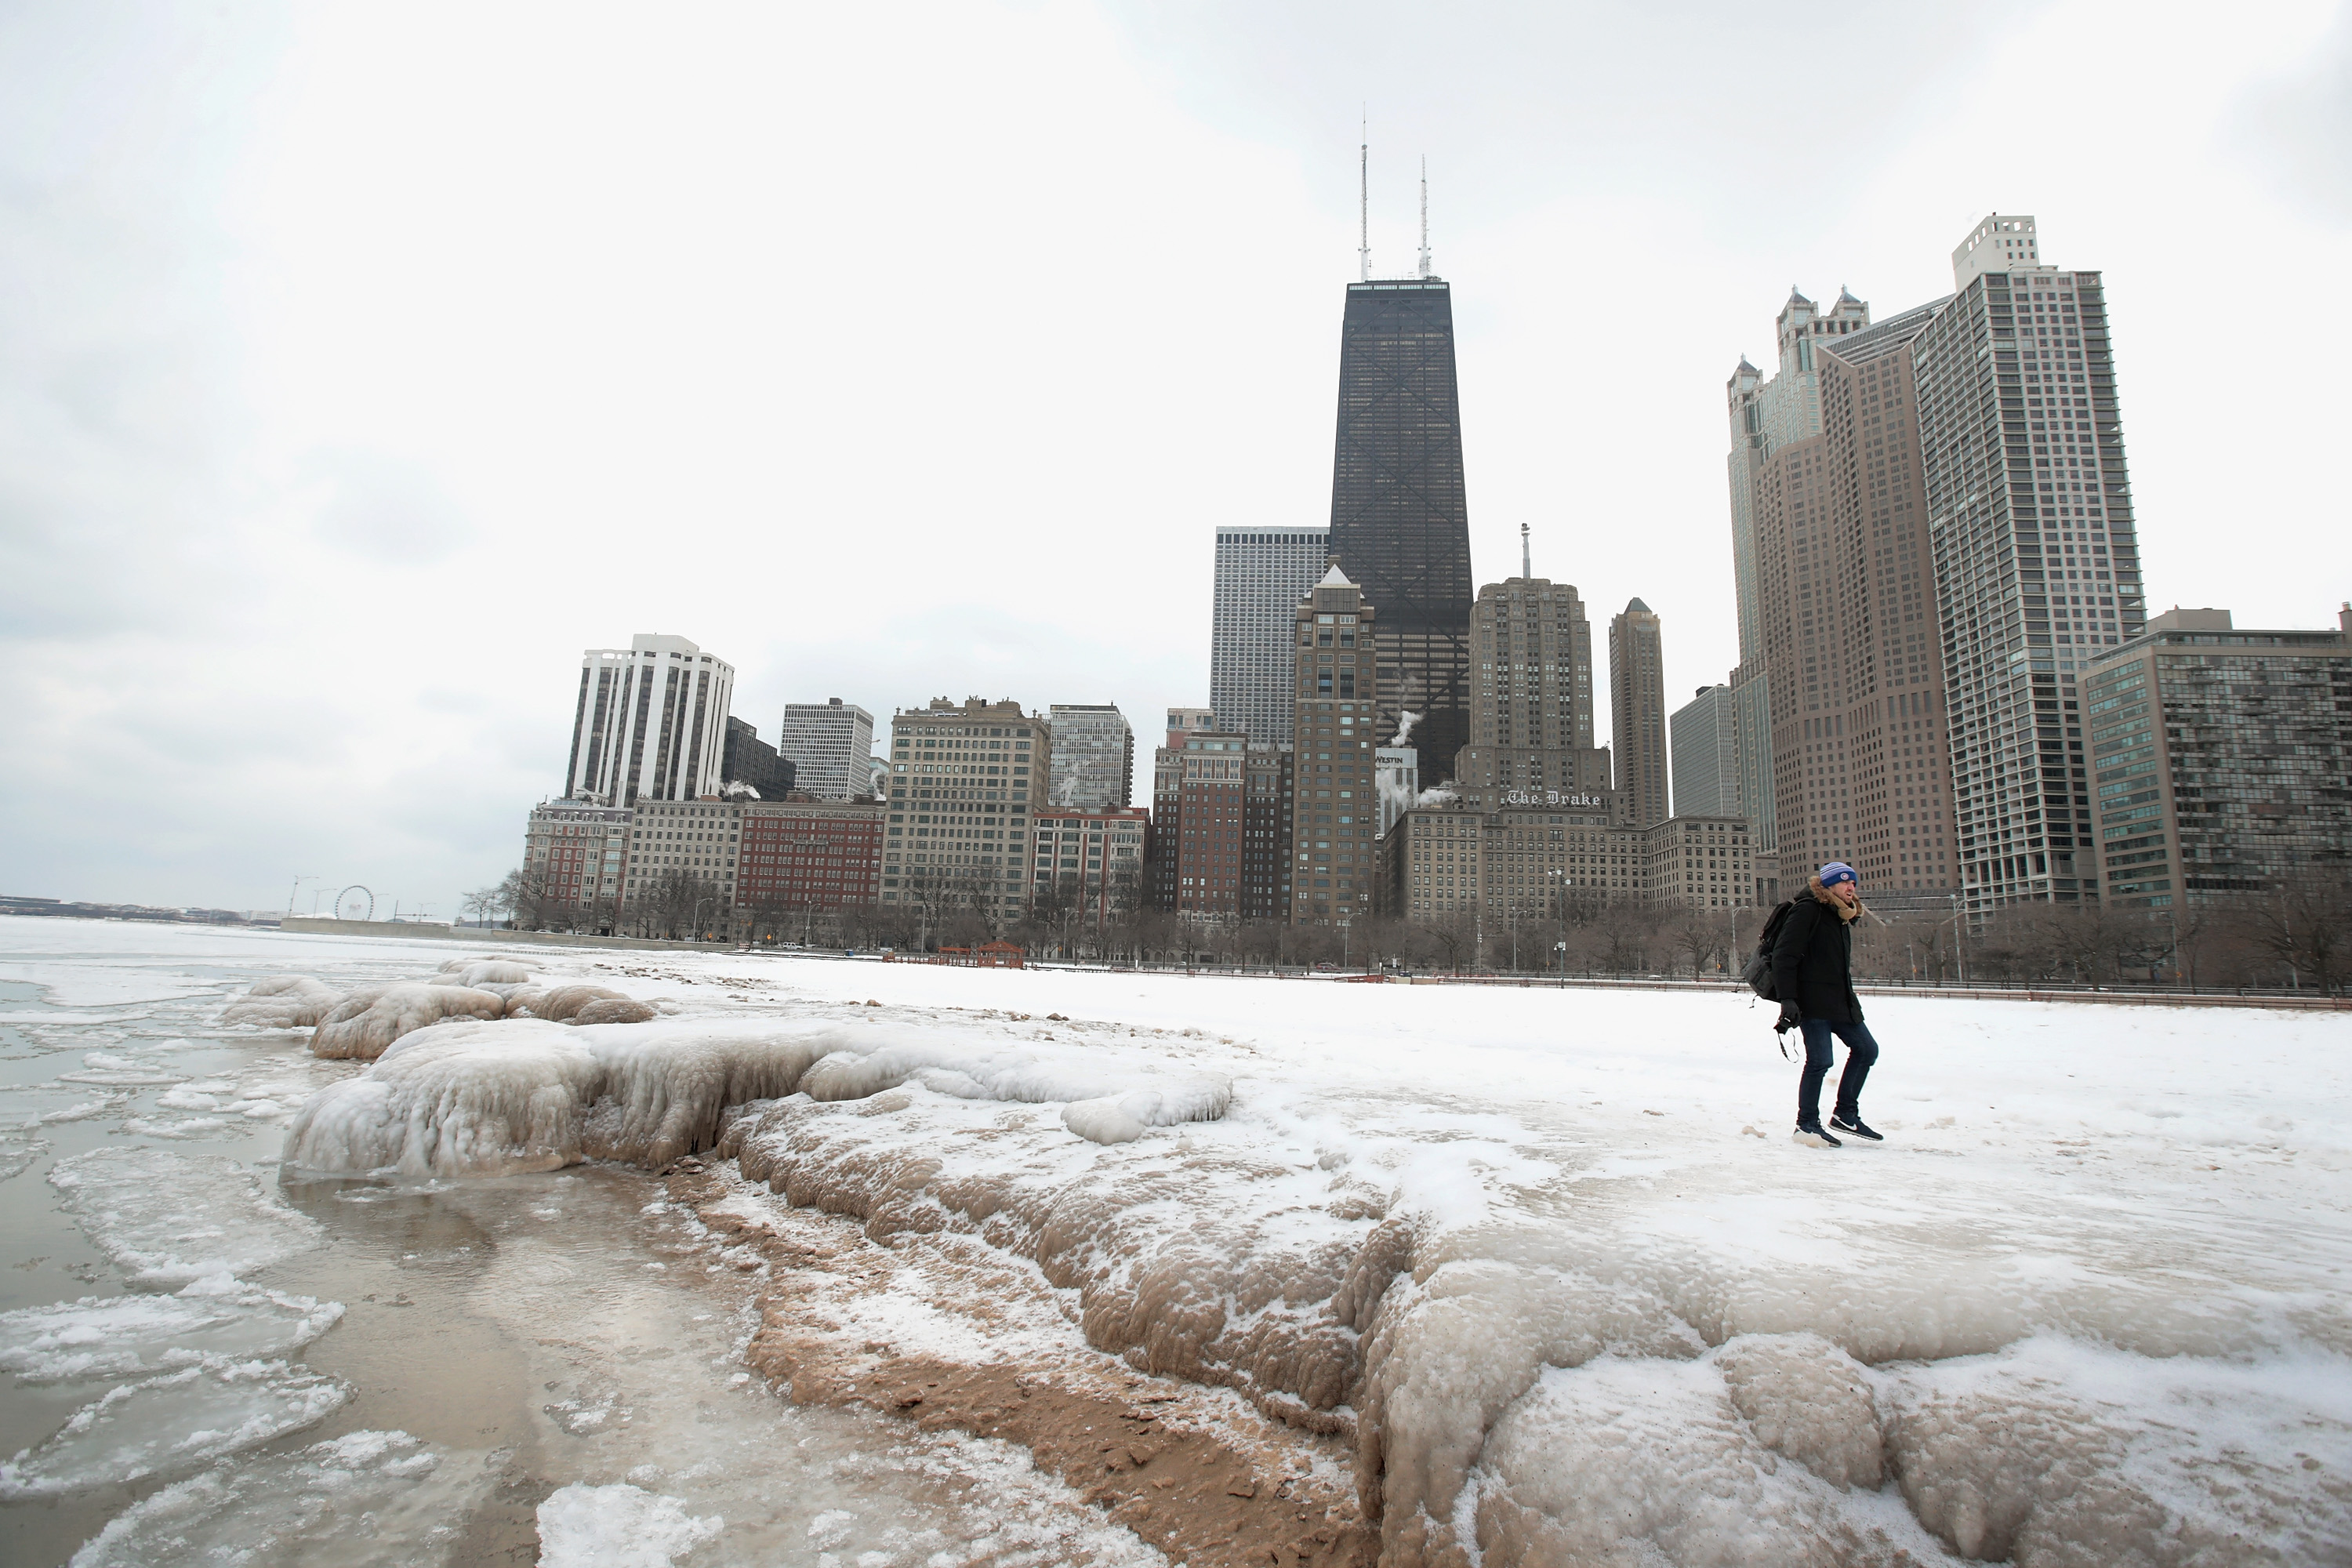 Chicago's Deep Freeze Continues With Single Digit Temperatures